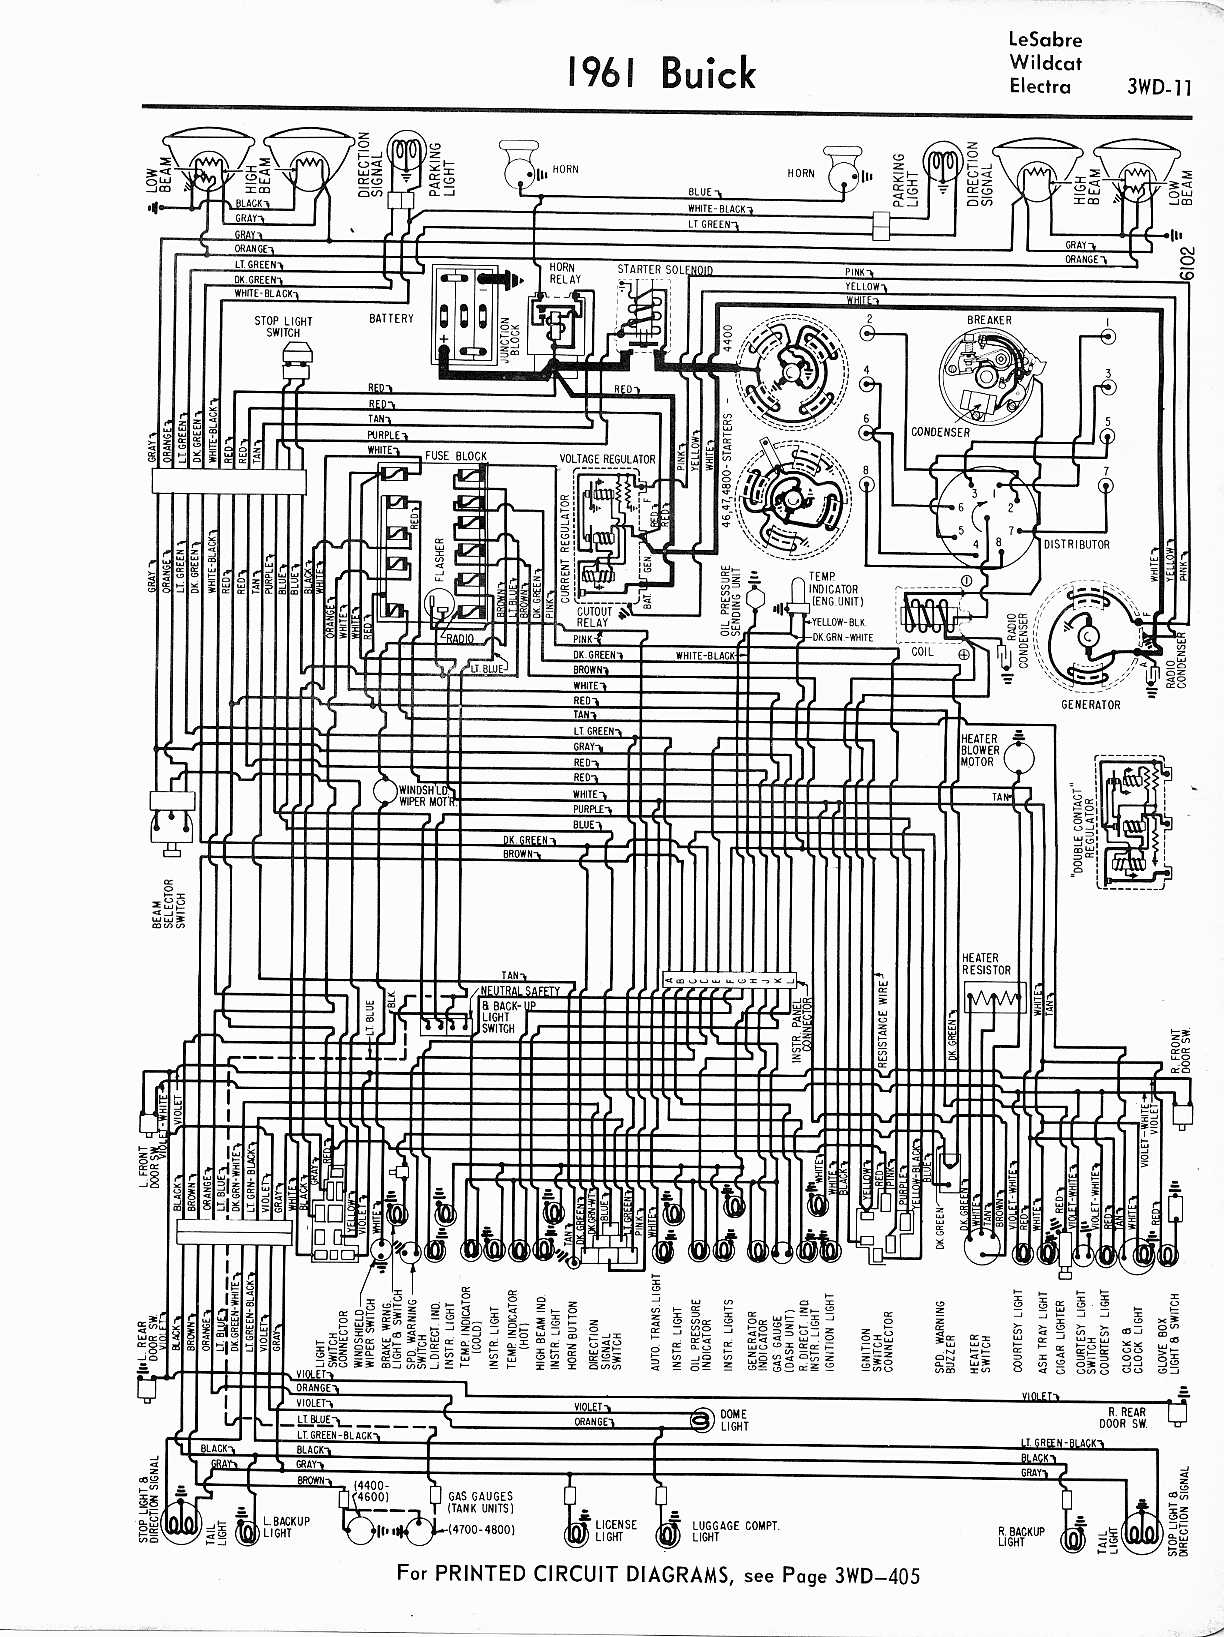 98 Buick Regal Fuse Box Wiring Library. Buick Wiring Diagrams 1957 1965 1998 Regal Vehicle Diagram 1961 Lesabre Wildcat Electra. Buick. 1998 Buick Regal Electrical Diagrams At Scoala.co